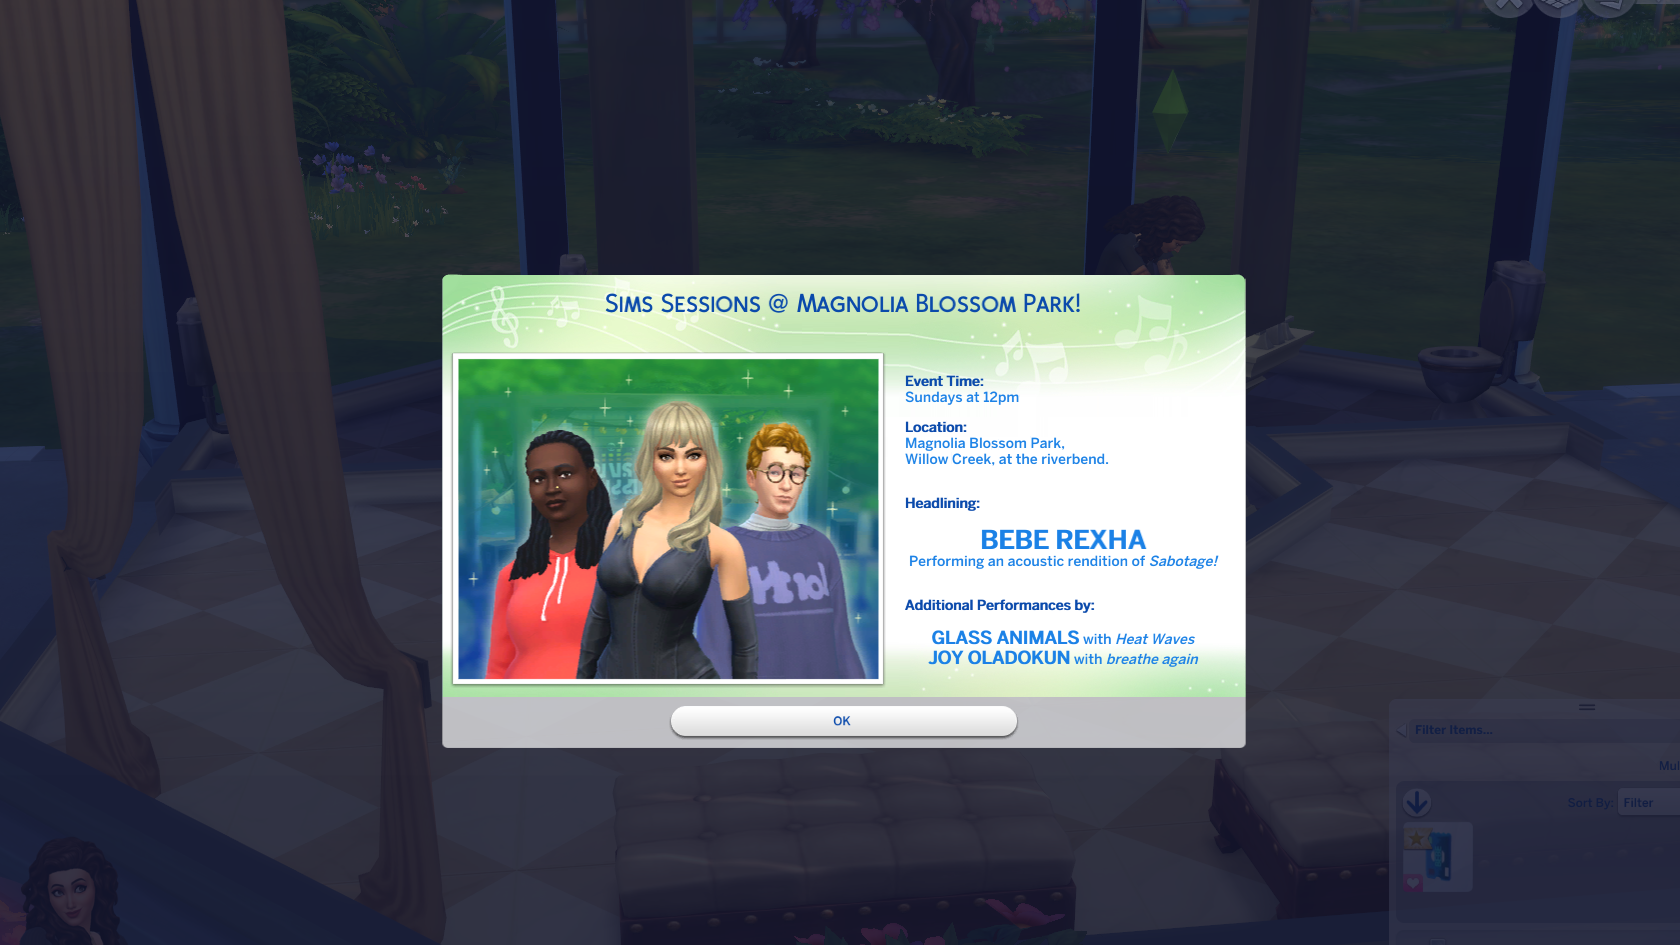 A Sims 4 on-screen pop up that says: Sims Sessions at Magnolia Blossom Park. Event time: Sundays at 12pm. Location: Magnolia Blossom Park, Willow Creek, at the riverbend. Headlining: Bebe Rexha, performing an acoustic rendition of Sabotage. Additional Performances by Glass Animals, with Heat Waves, and Joy Oladokun with Breathe Again.